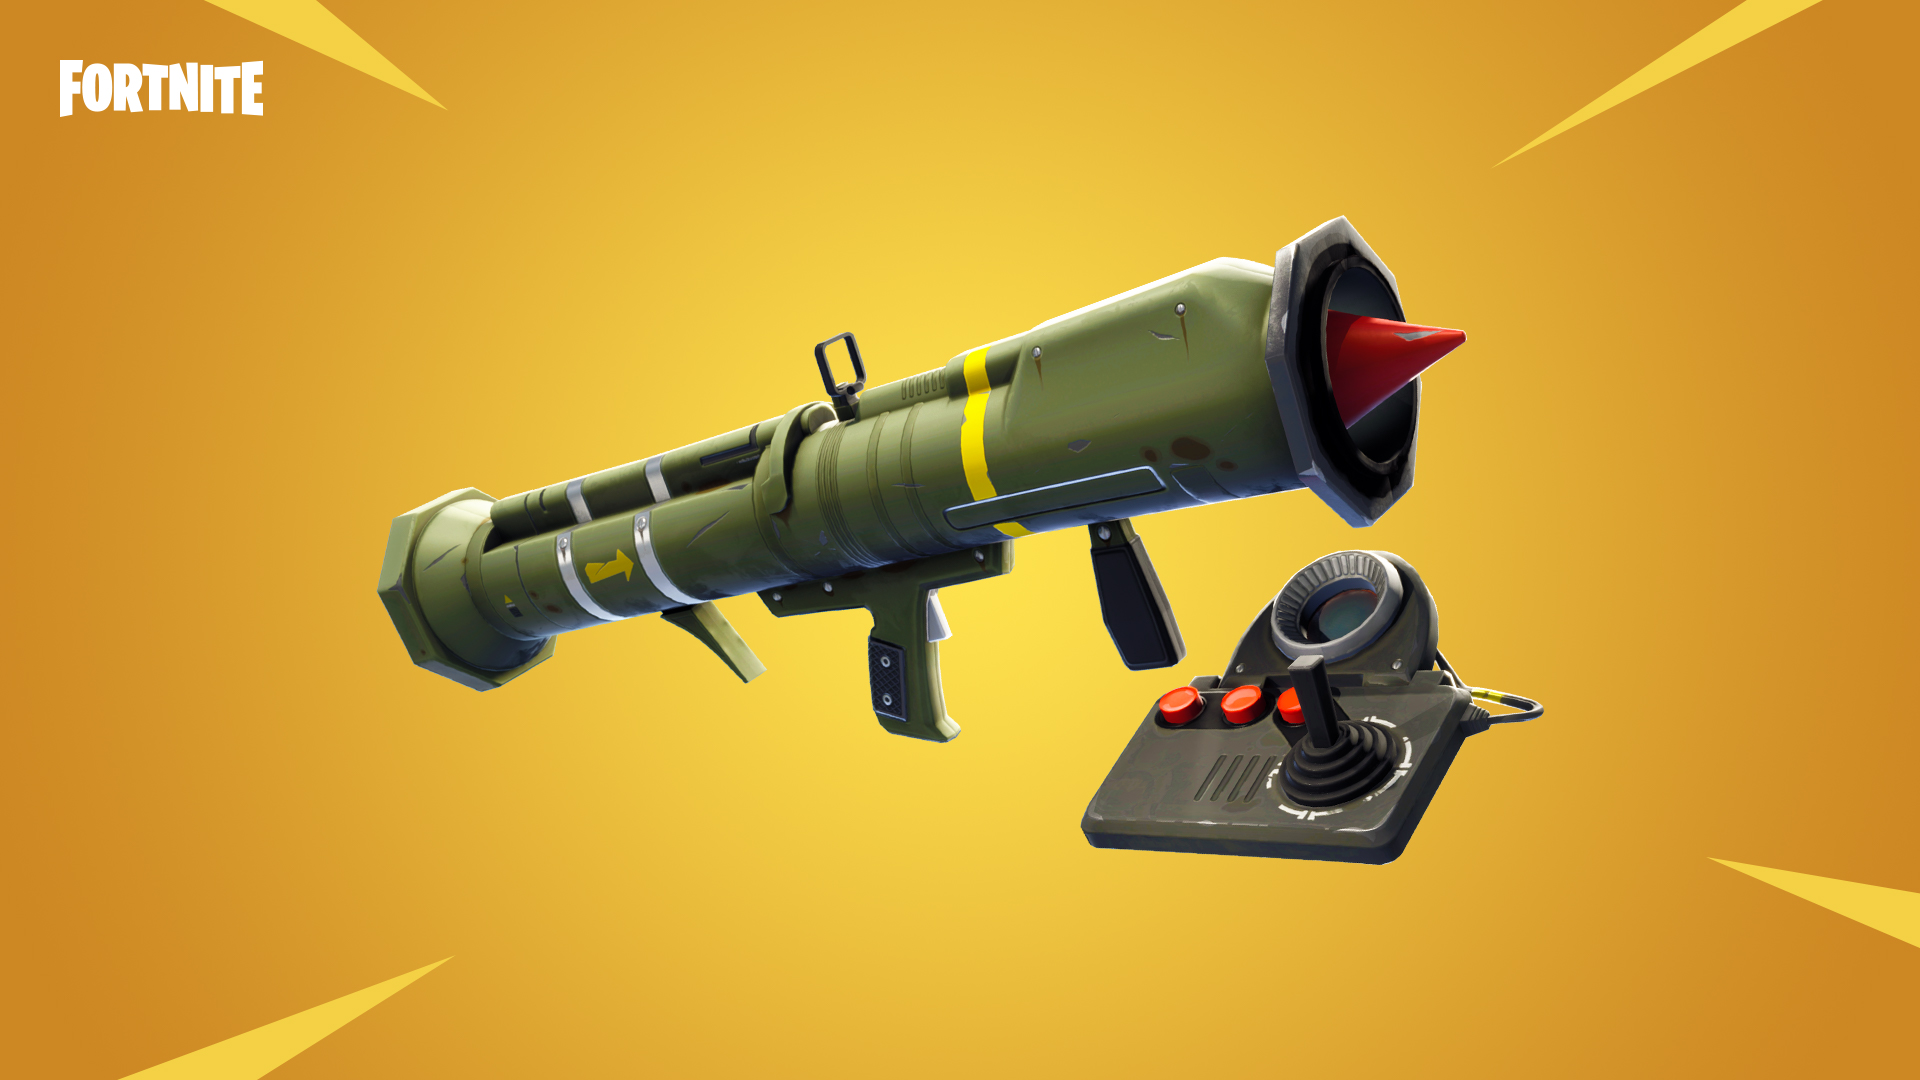 Fortnite v5 10 Patch Notes: Guided Missile returns, new Fly